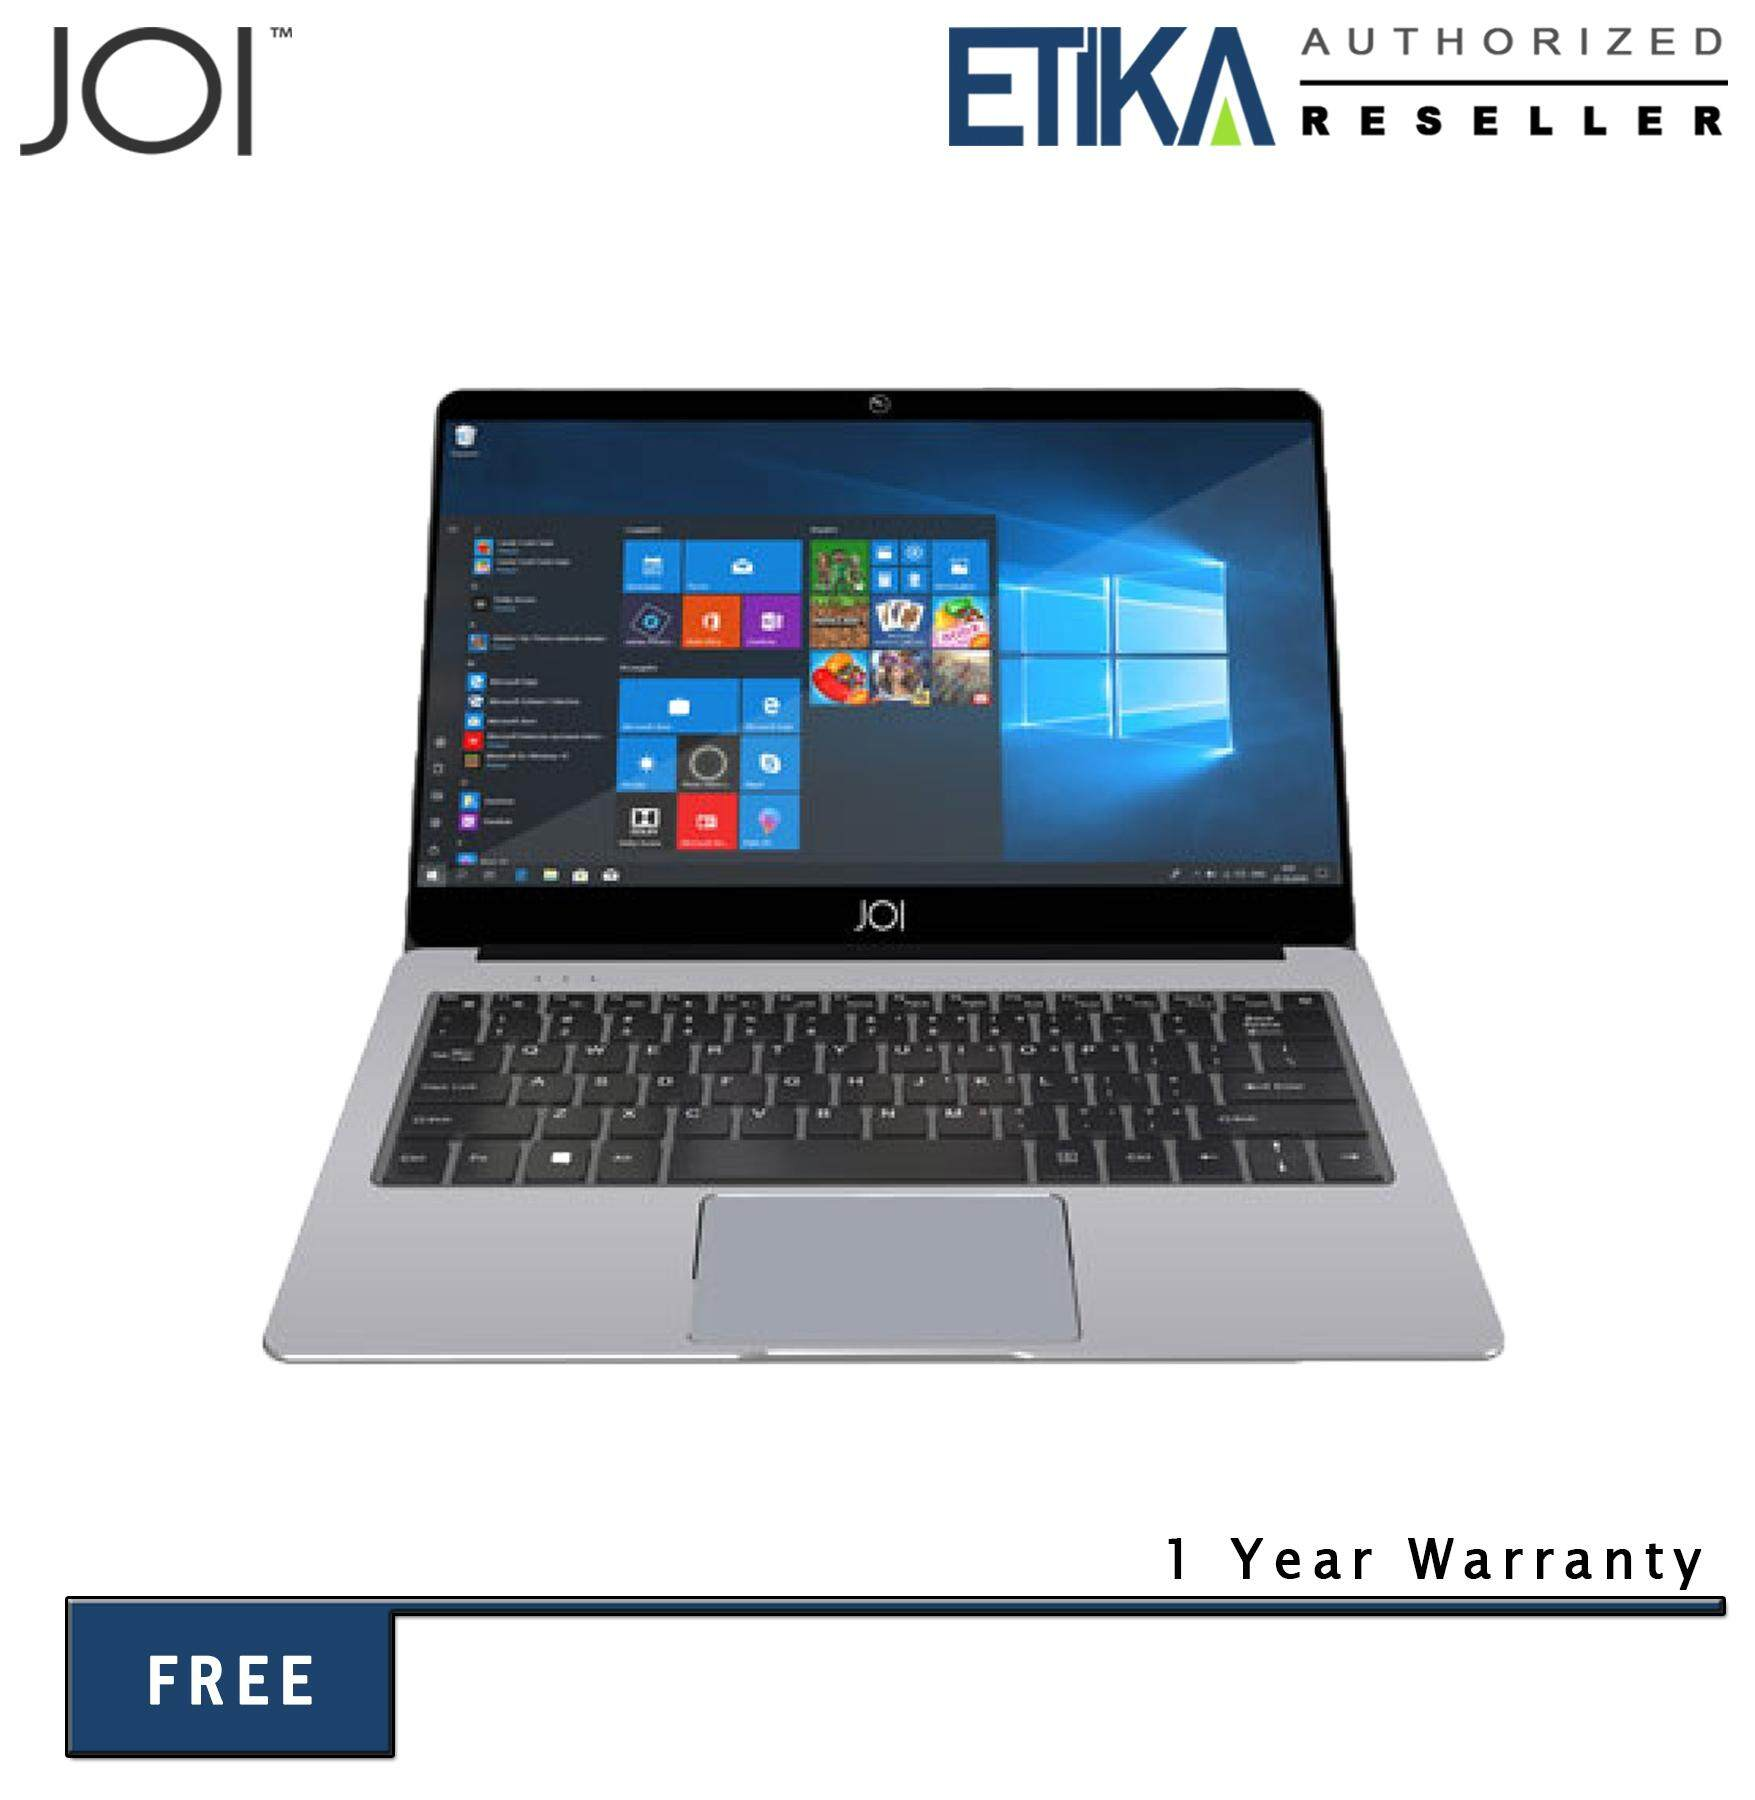 JOI Book 80 12.5 FHD Silver Laptop (Cel N3350/ 4GB/ 64GB/ Intel Graphics/ W10) Malaysia